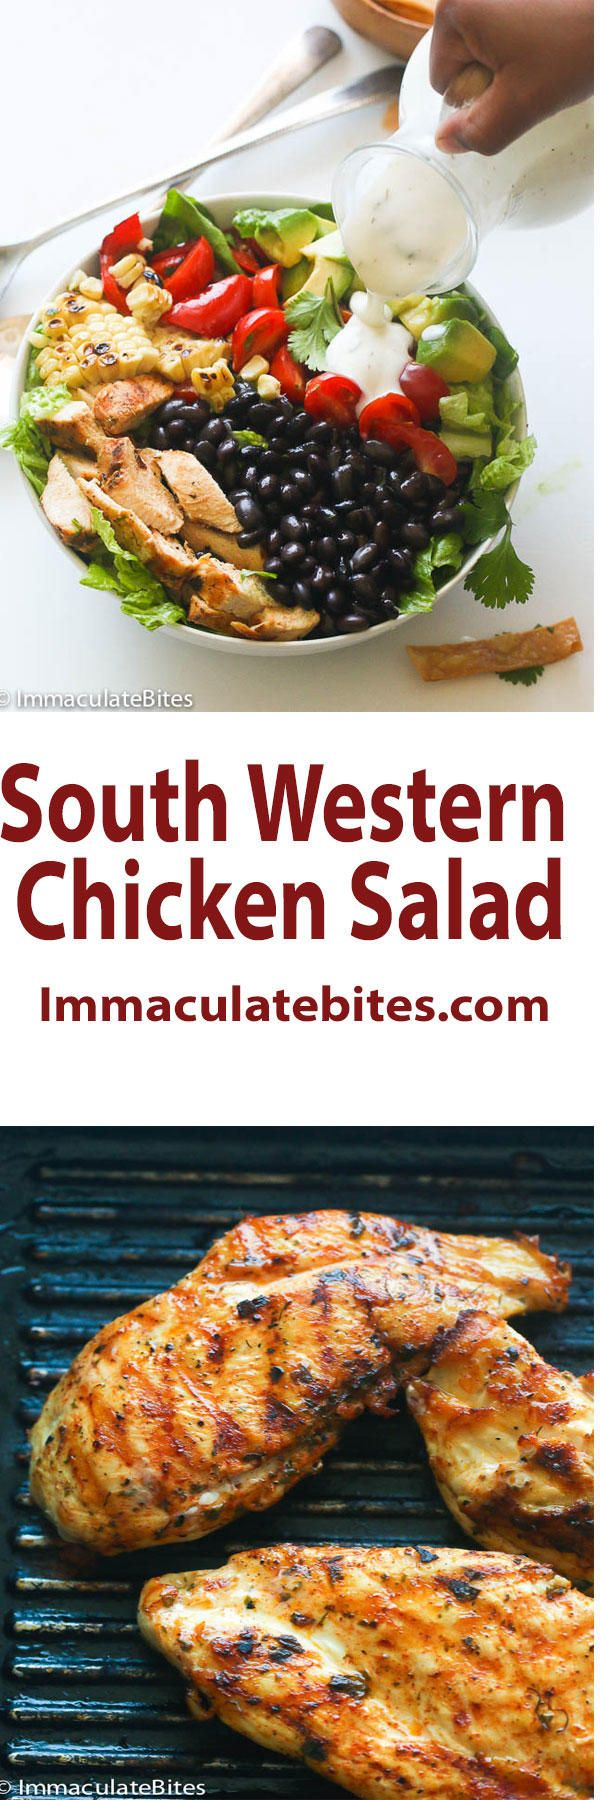 SouthWest Chicken Salad – a combination of chicken breast seasoned with taco spice and paired with reduce calorie ranch dressing. Seriously, what's not to love?